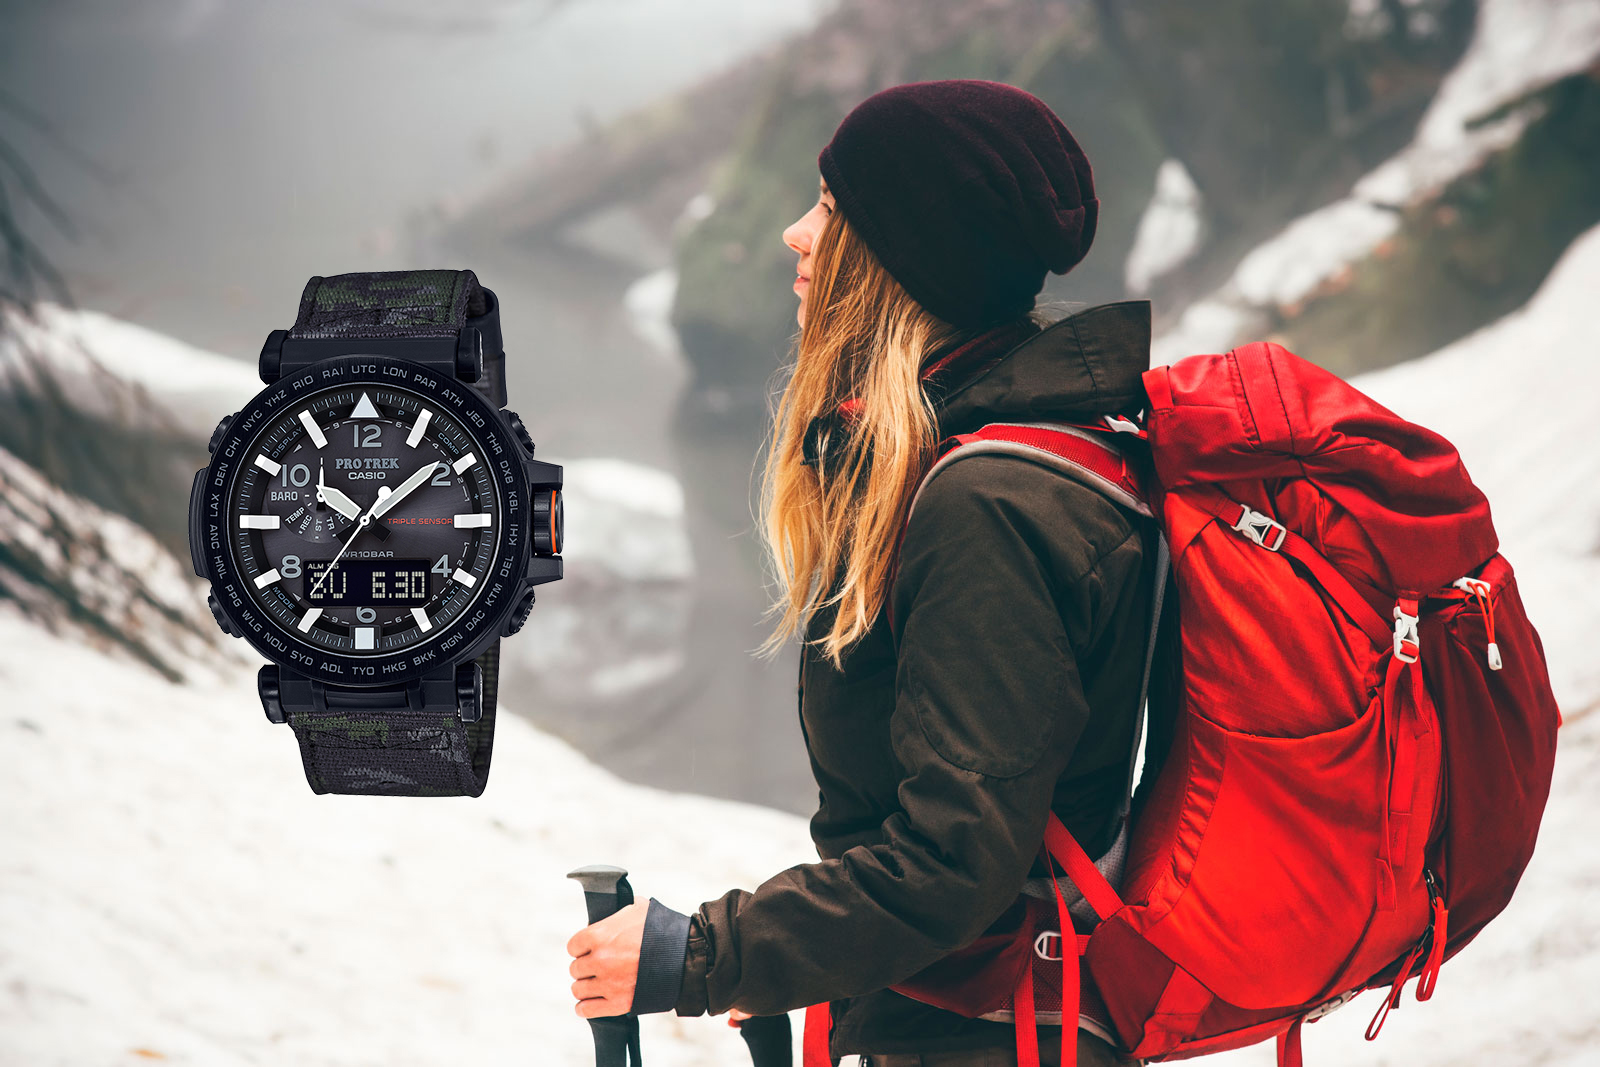 [Live Photos] ProTrek PRG-650YBE-3 and WINTER HIKING SAFETY TIPS